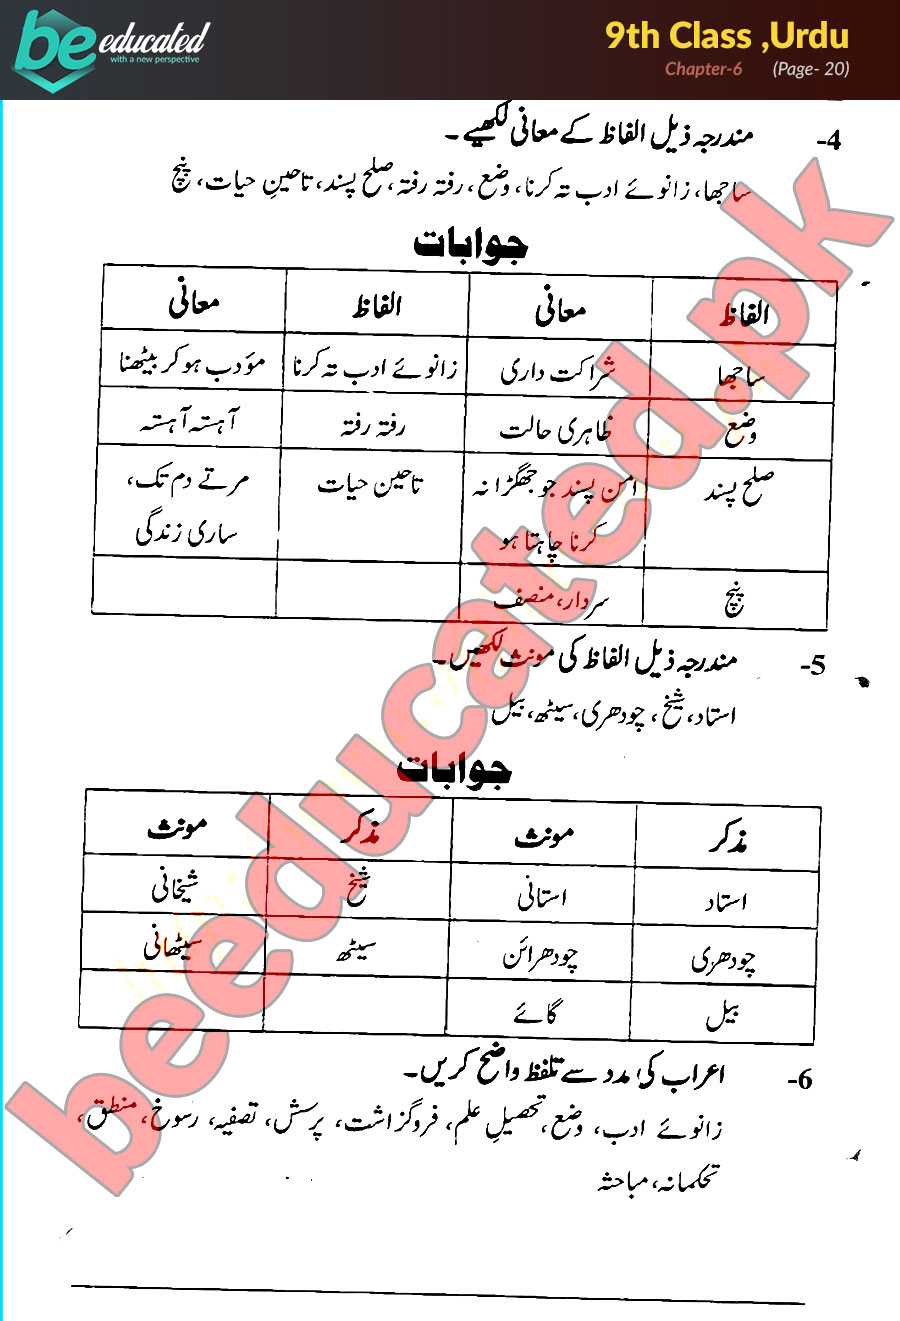 Chapter 6 Urdu 9th Class Notes - Matric Part 1 Notes